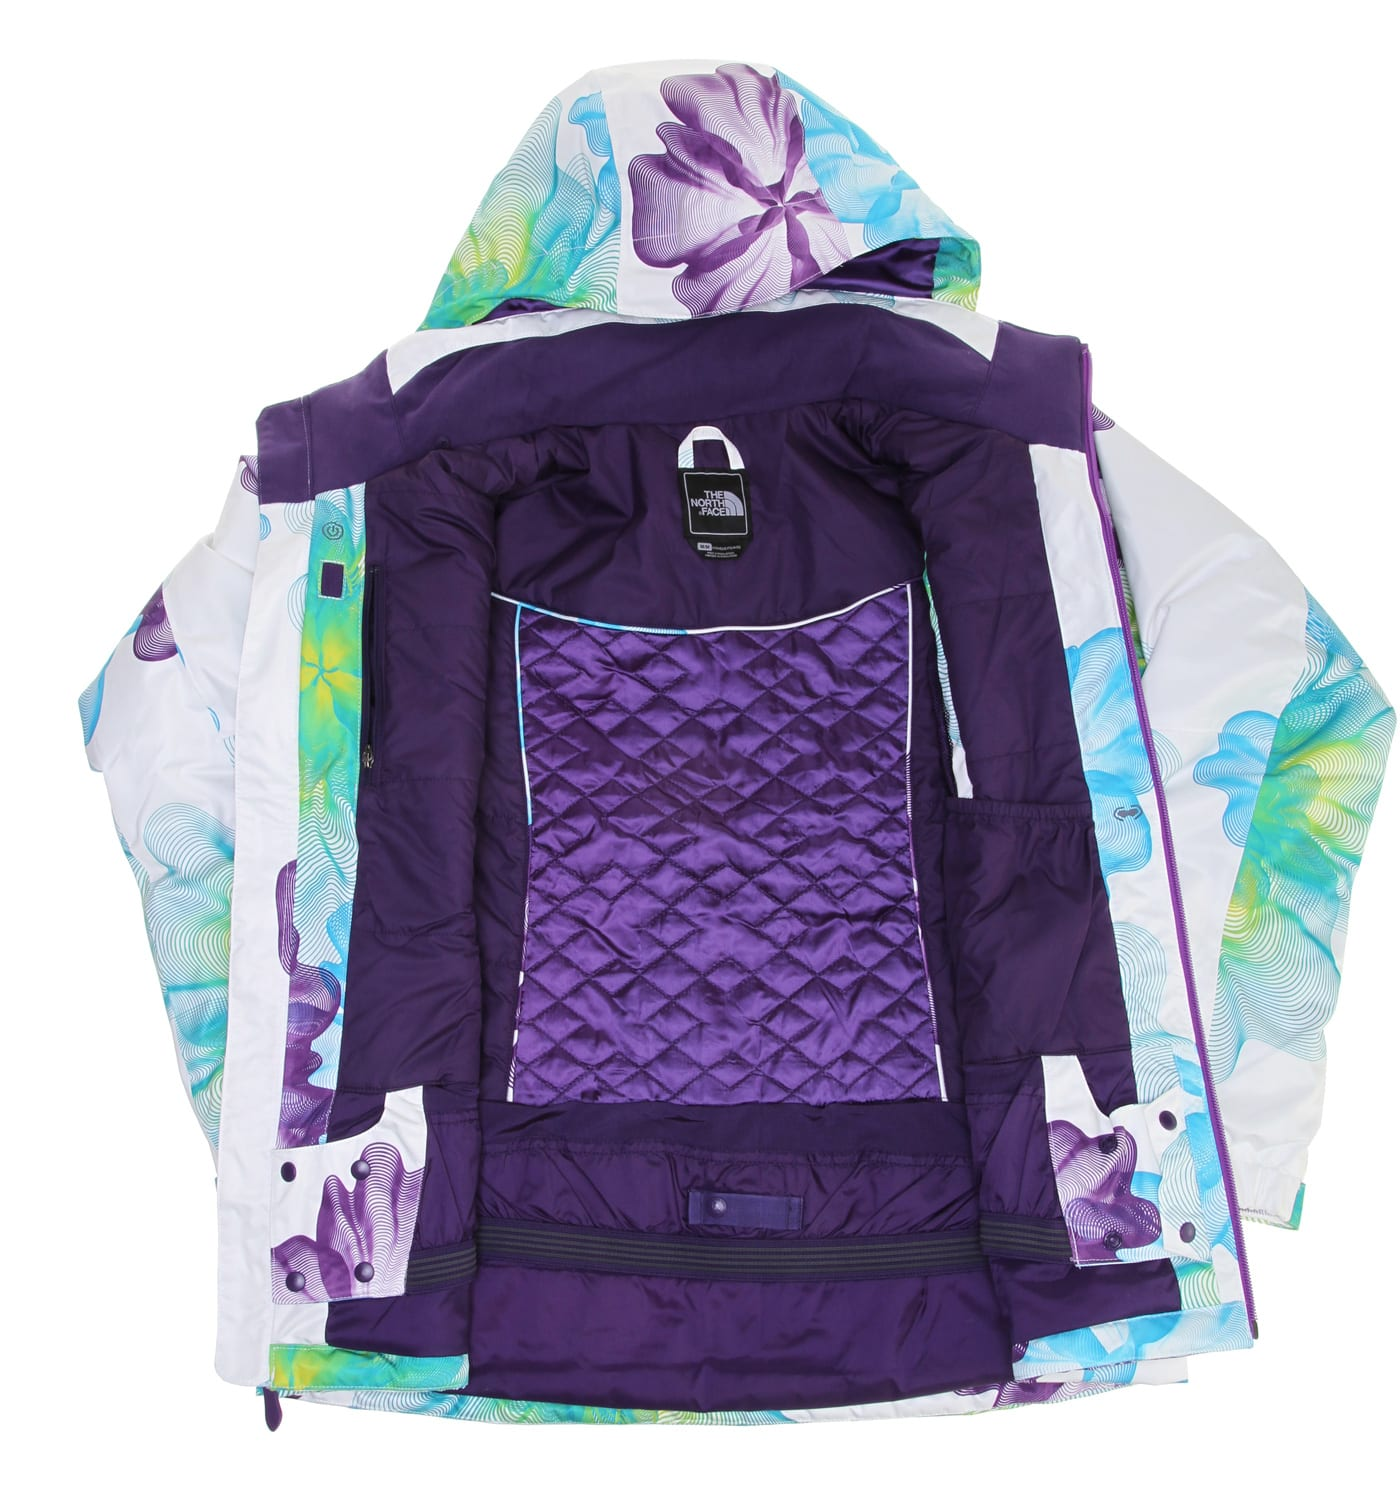 Sale The North Face Snow Cougar Print Ski Jacket Womens up to 60% off